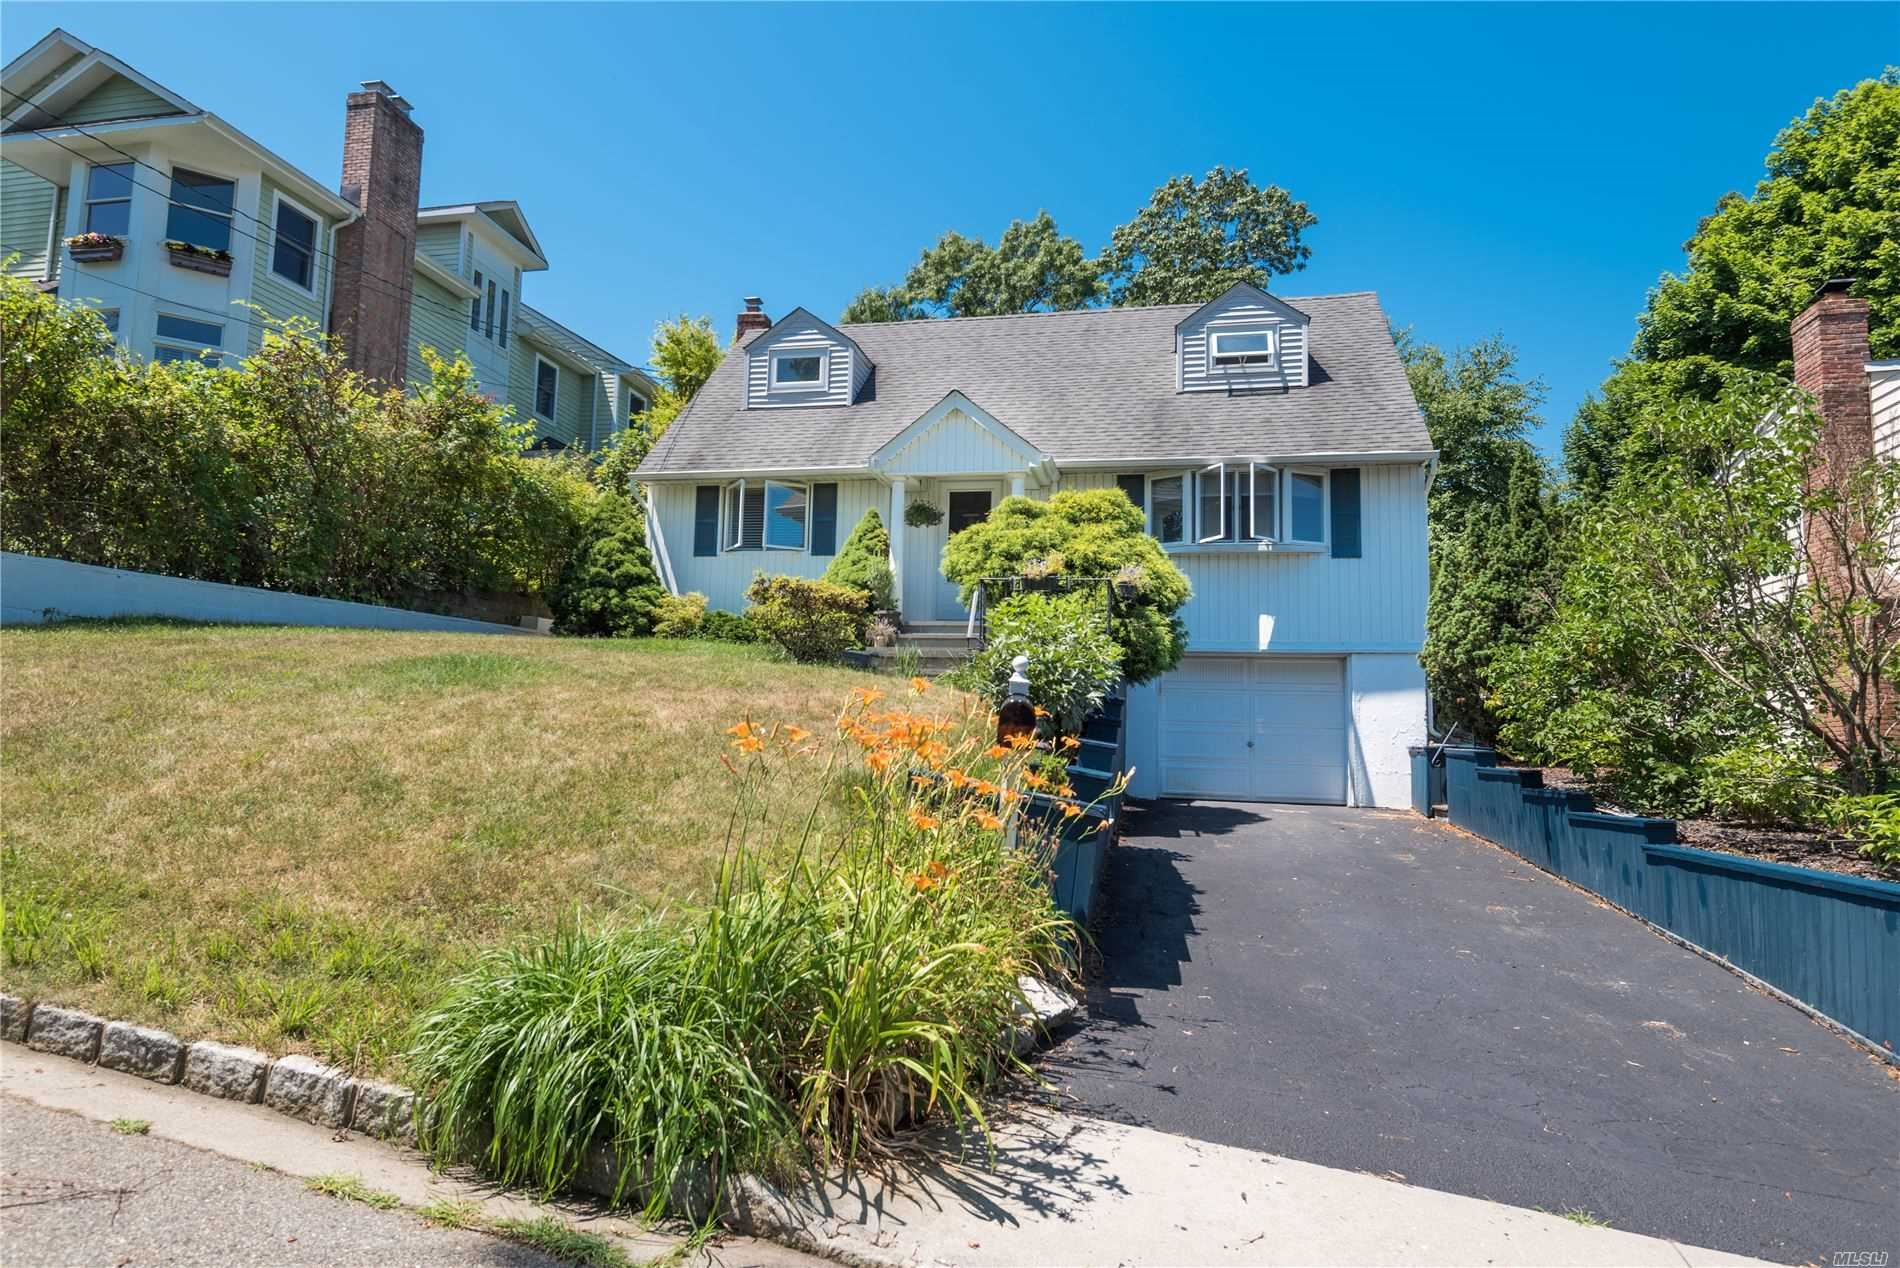 140 Summers Street, Oyster Bay, NY 11771 - MLS#: 3230309